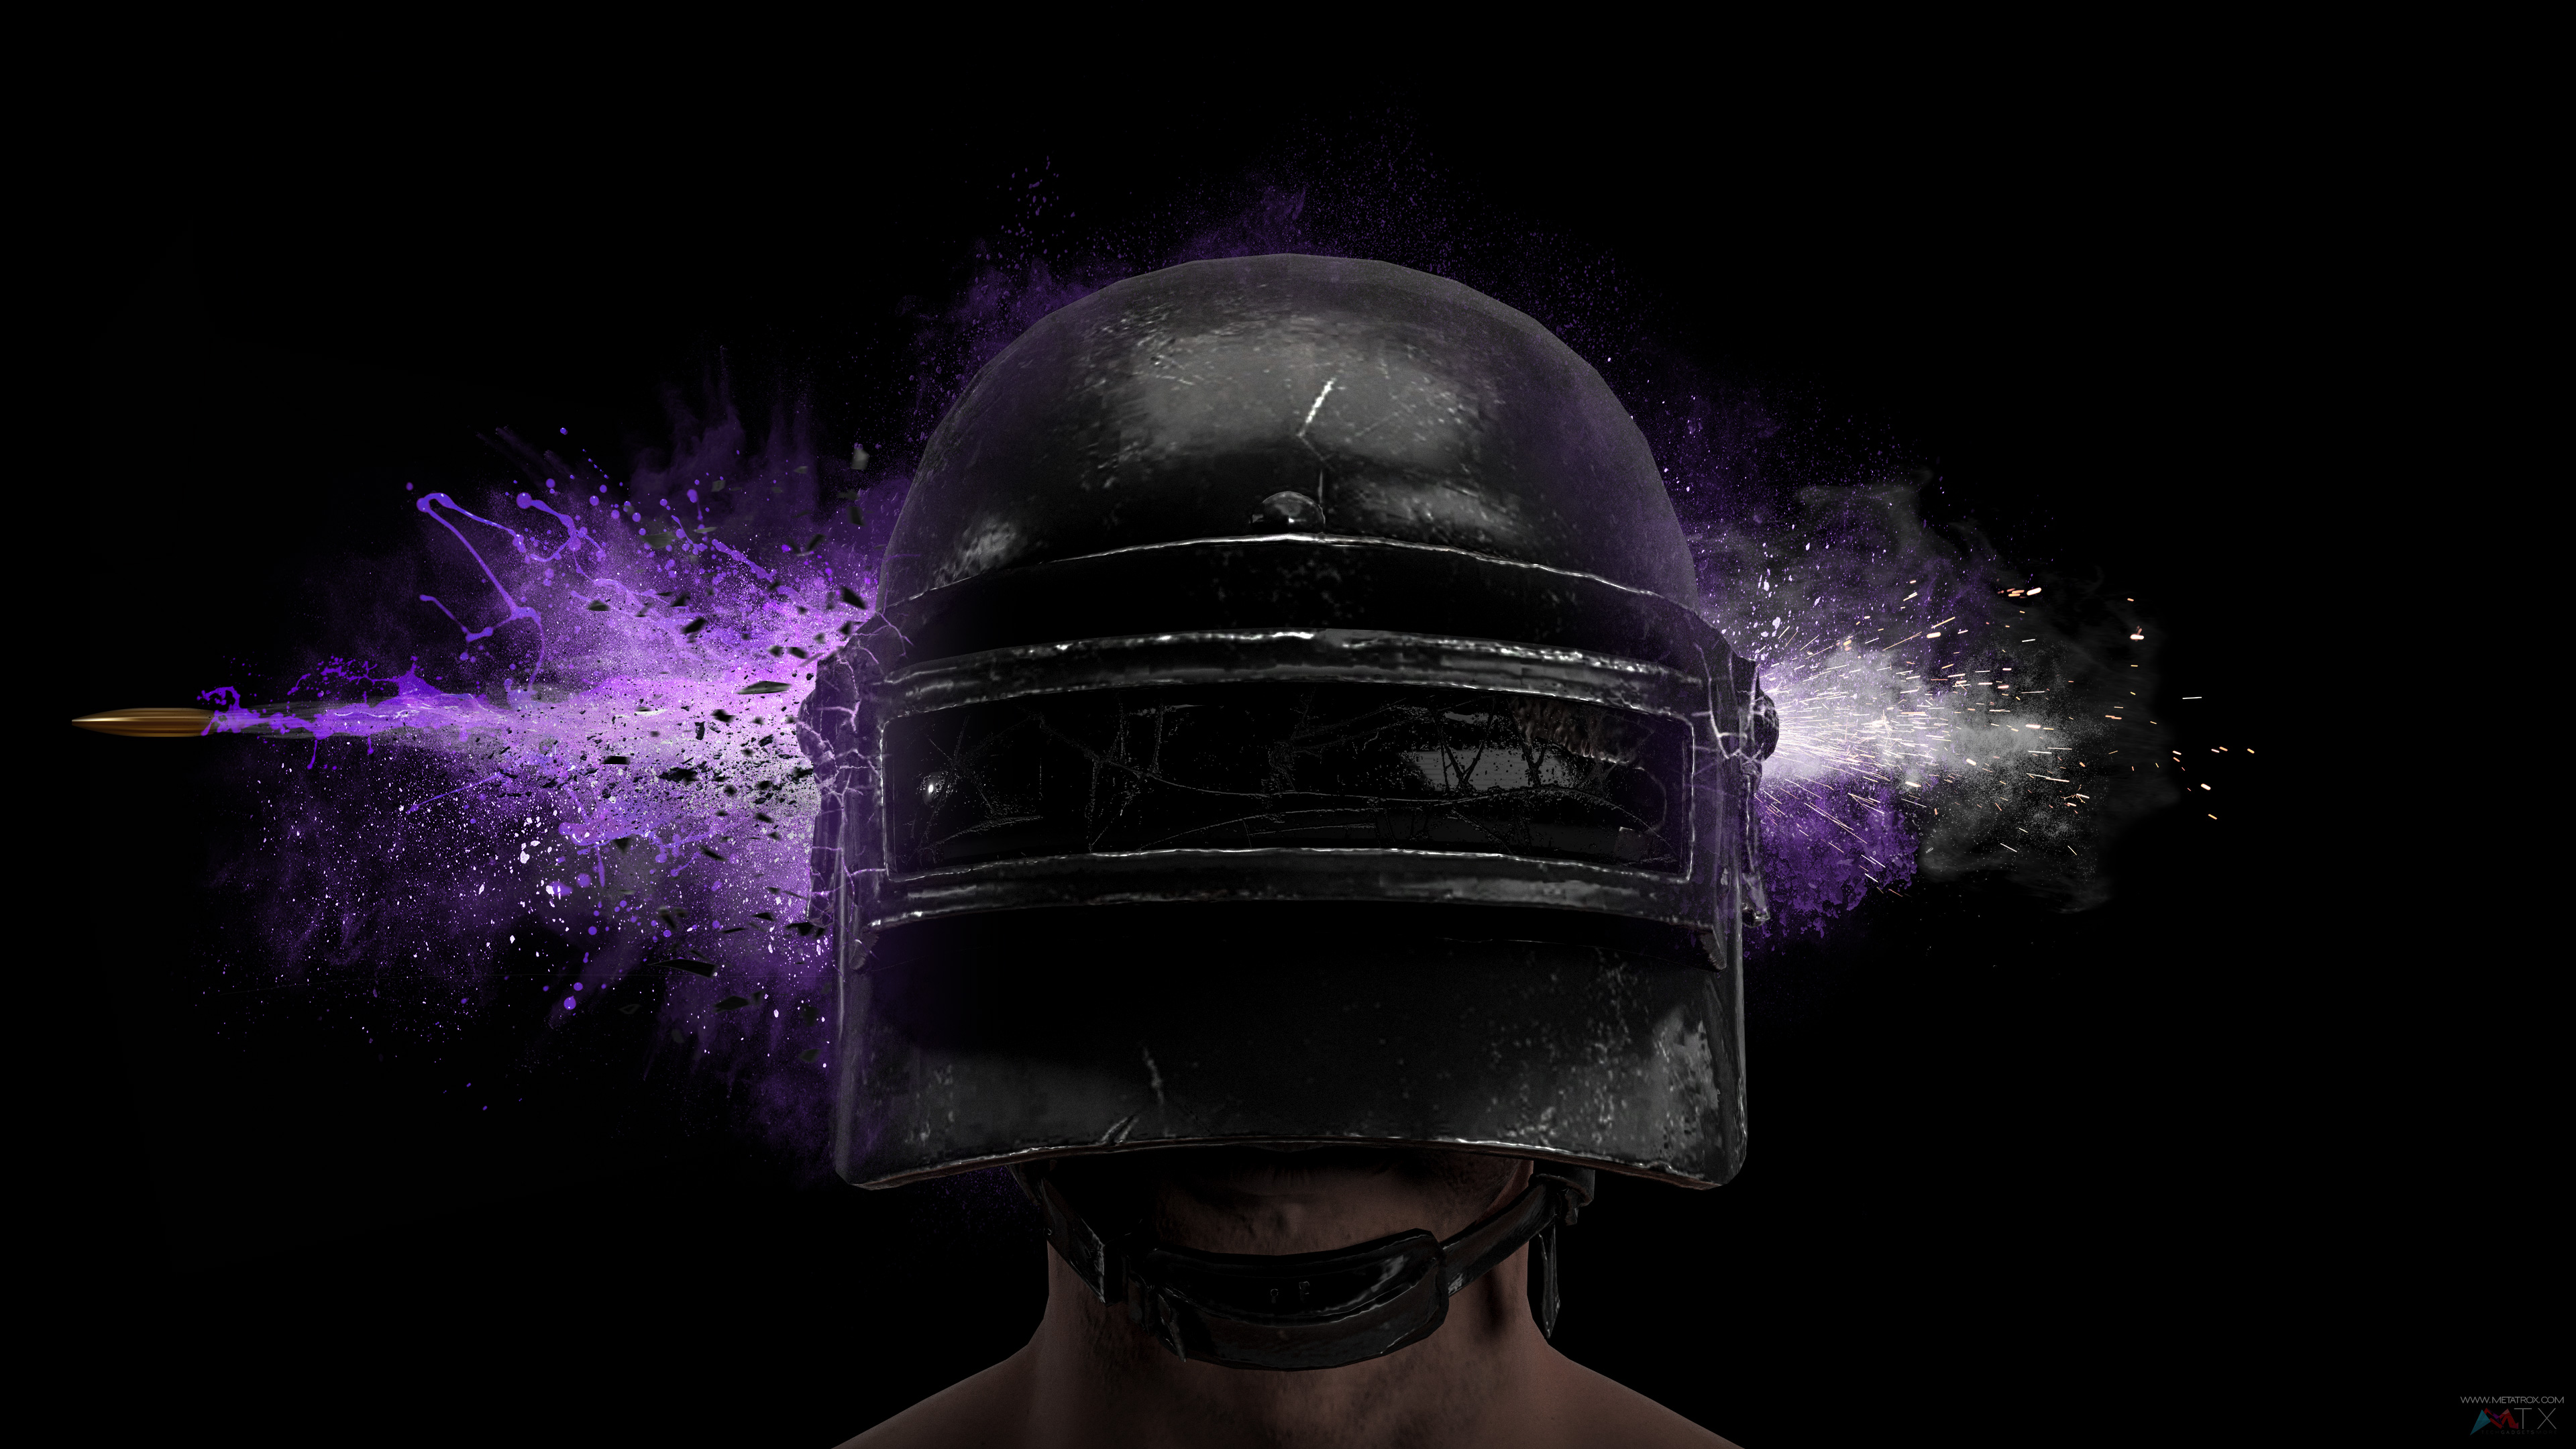 Pubg Helmet Guy 4k Pubg Wallpapers Playerunknowns: 3840x2160 PUBG Game Helmet Guy 4k 4k HD 4k Wallpapers